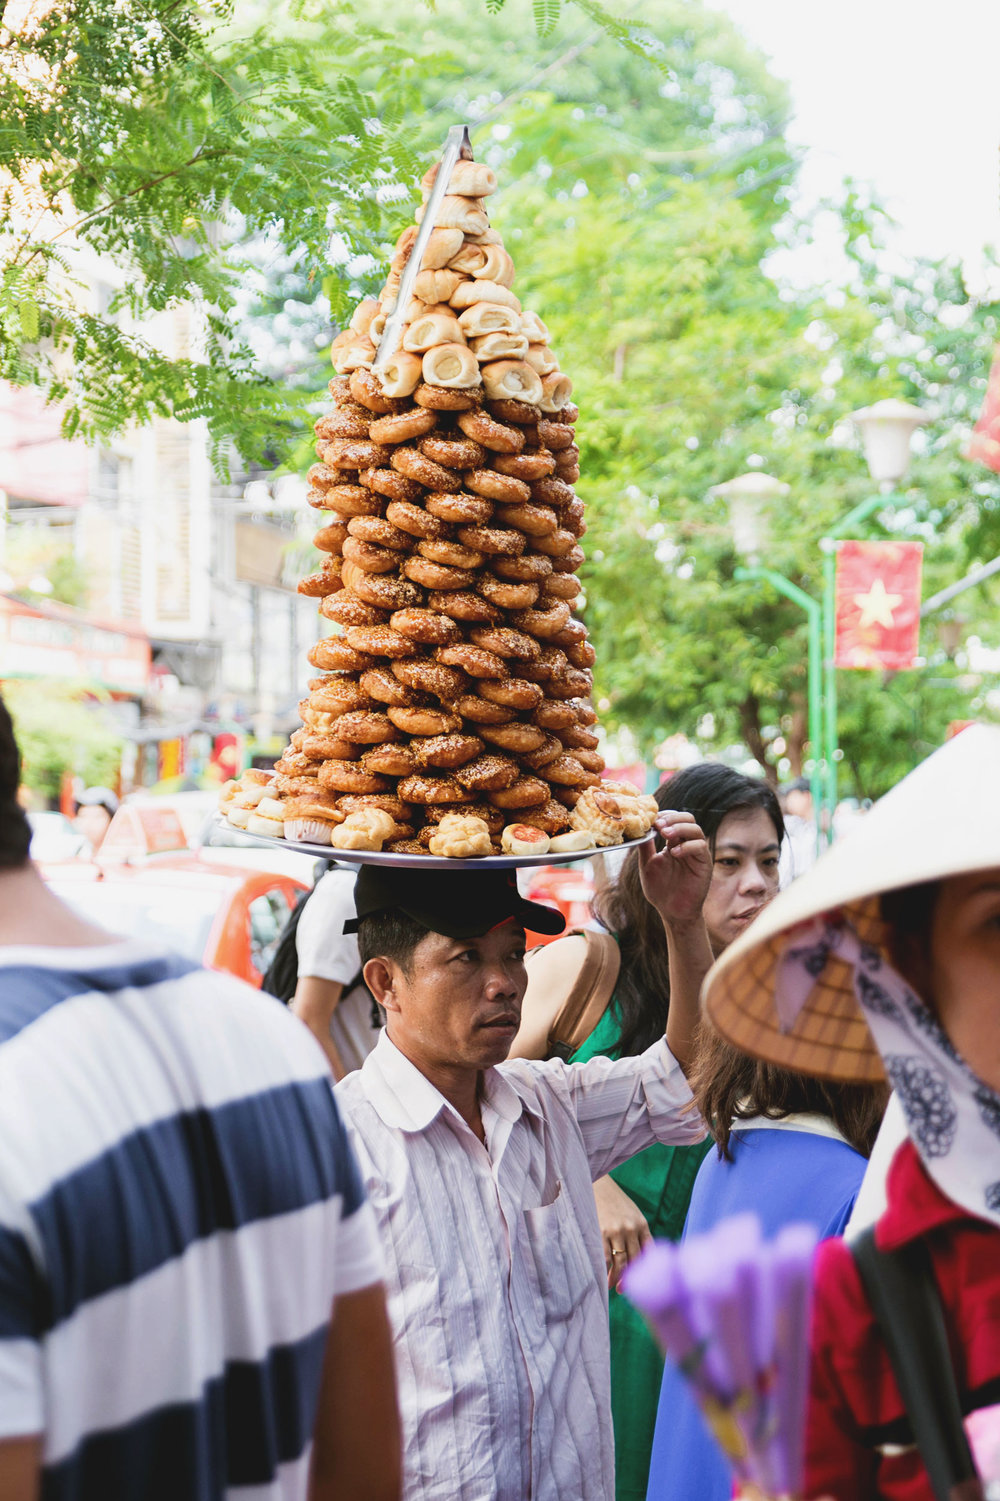 A man holds a tower of pastries on his head in Ho Chi Minh, Vietnam